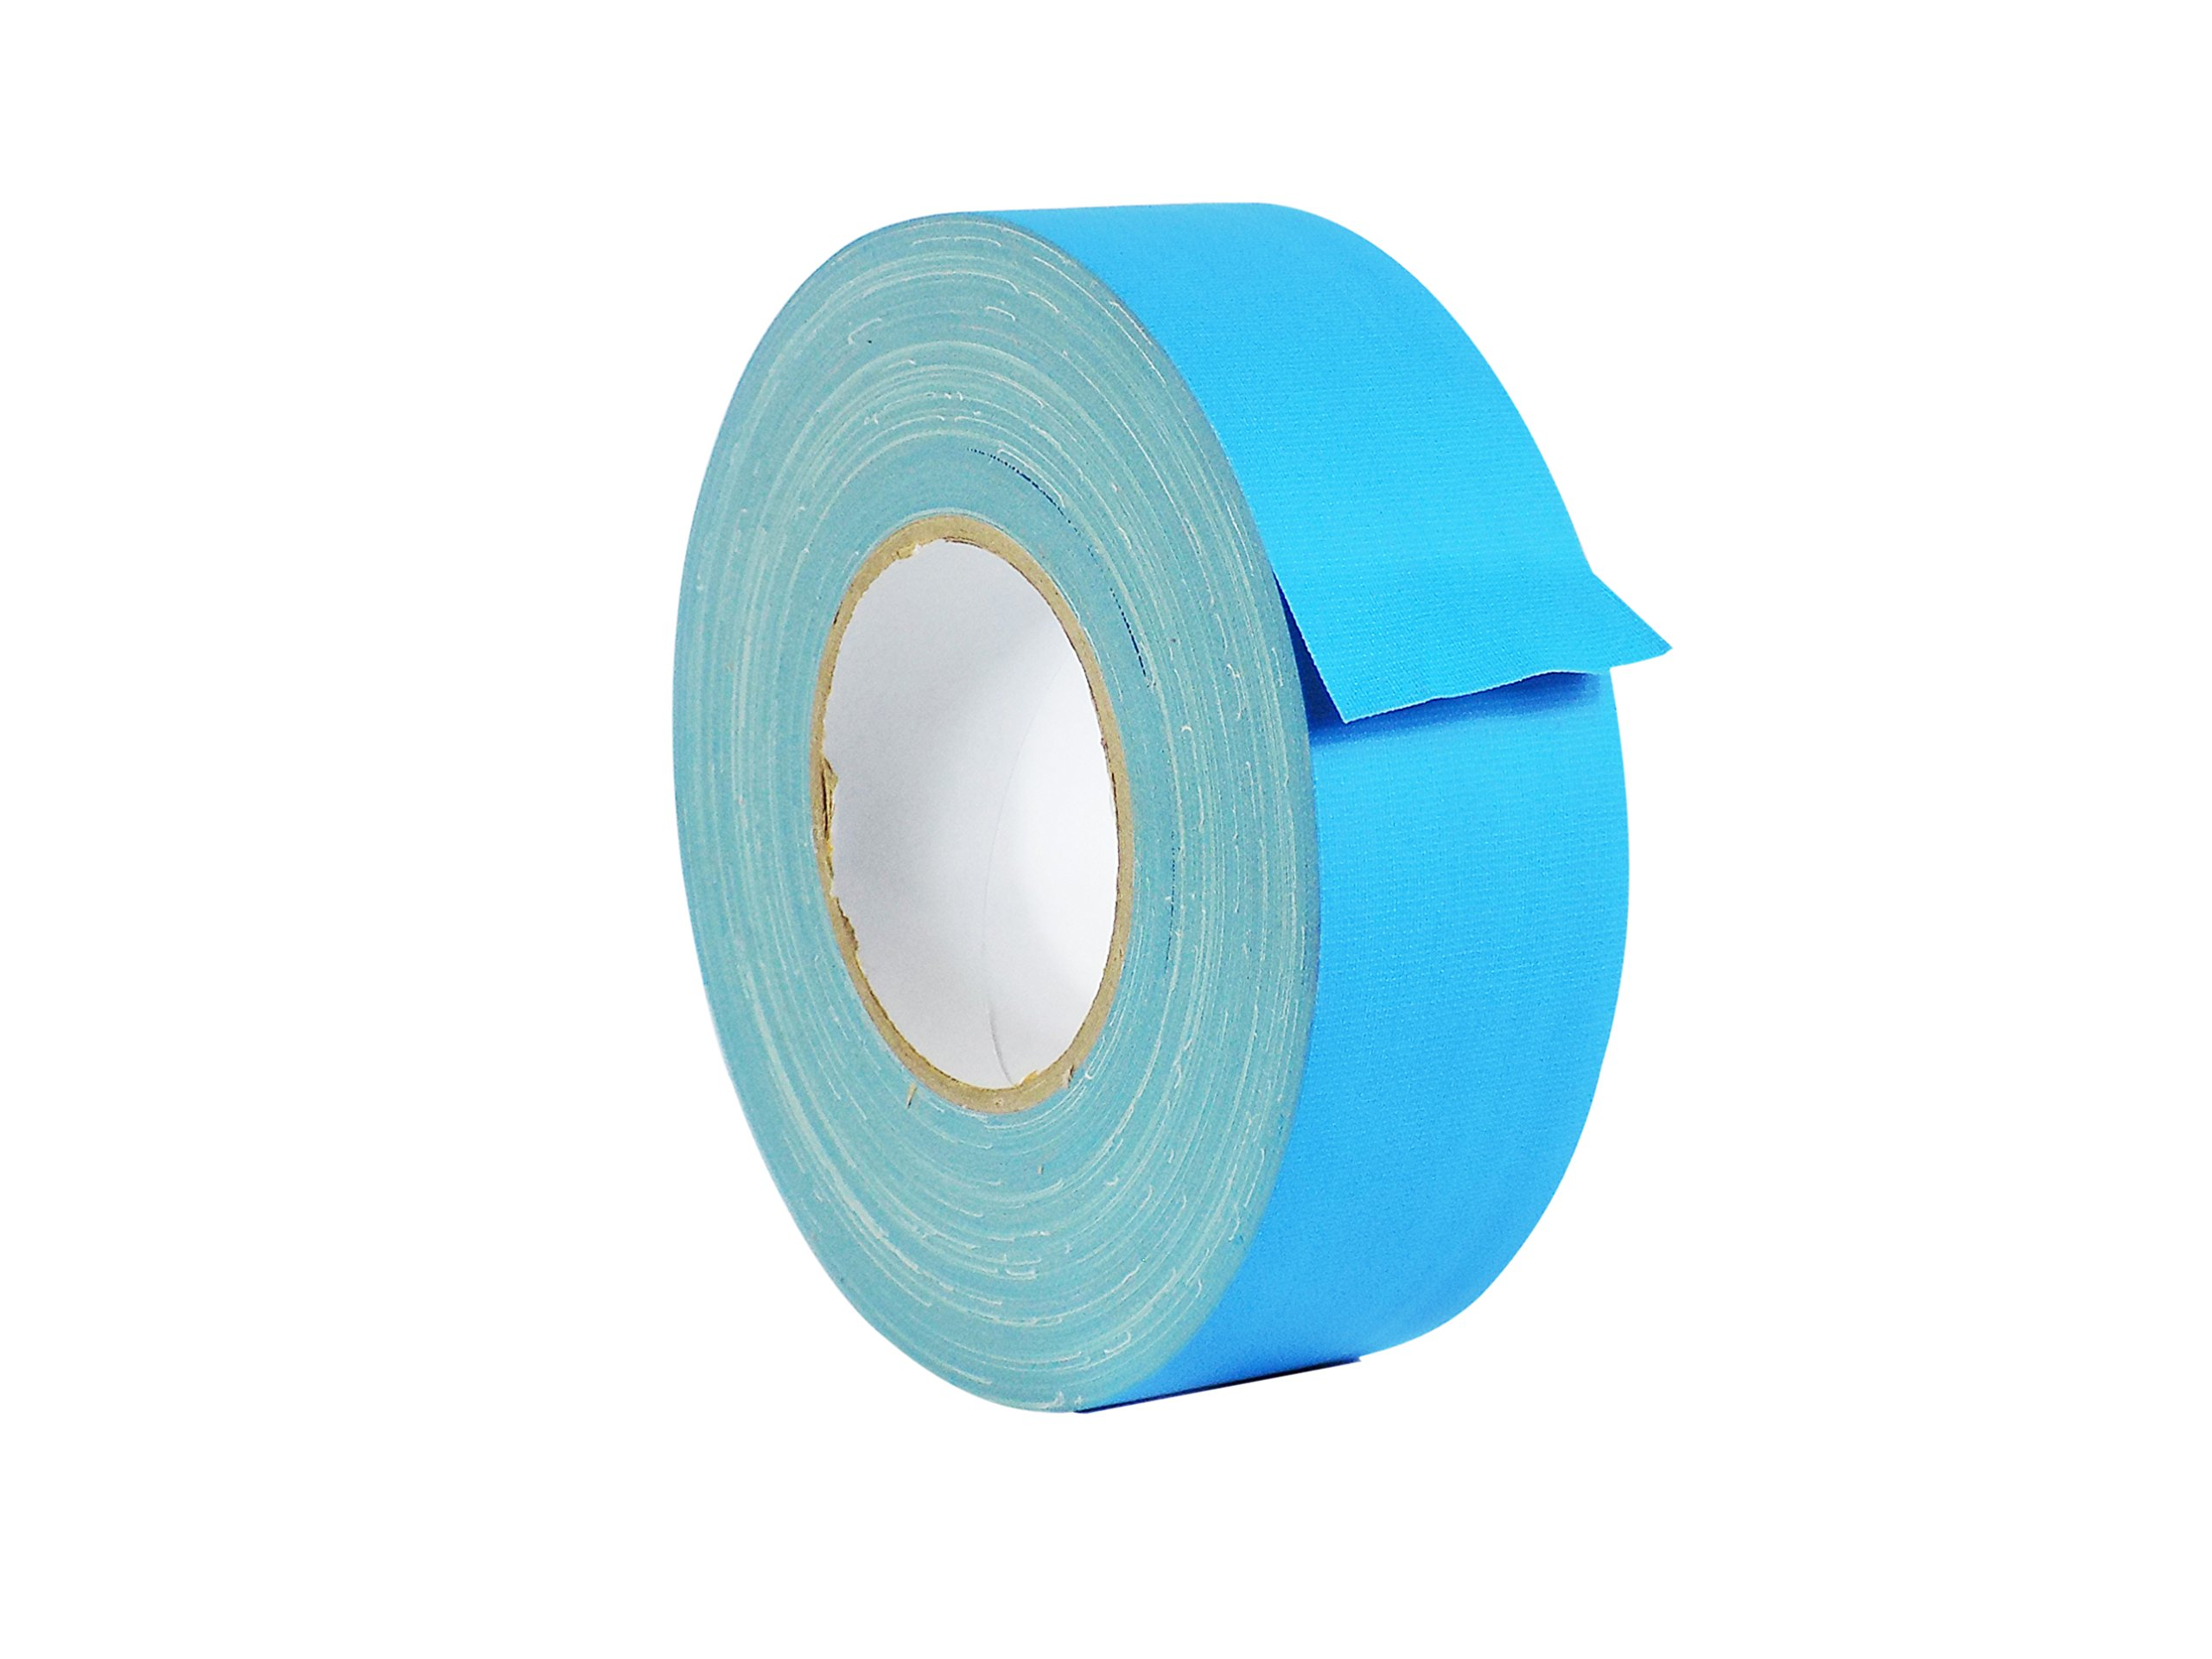 WOD CGT-80 Light Blue Gaffer Tape Low Gloss Finish Film, Residue Free, Non Reflective Gaffer, Better than Duct Tape (Available in Multiple Sizes & Colors): 1.5 in. X 60 Yards (Pack of 1)